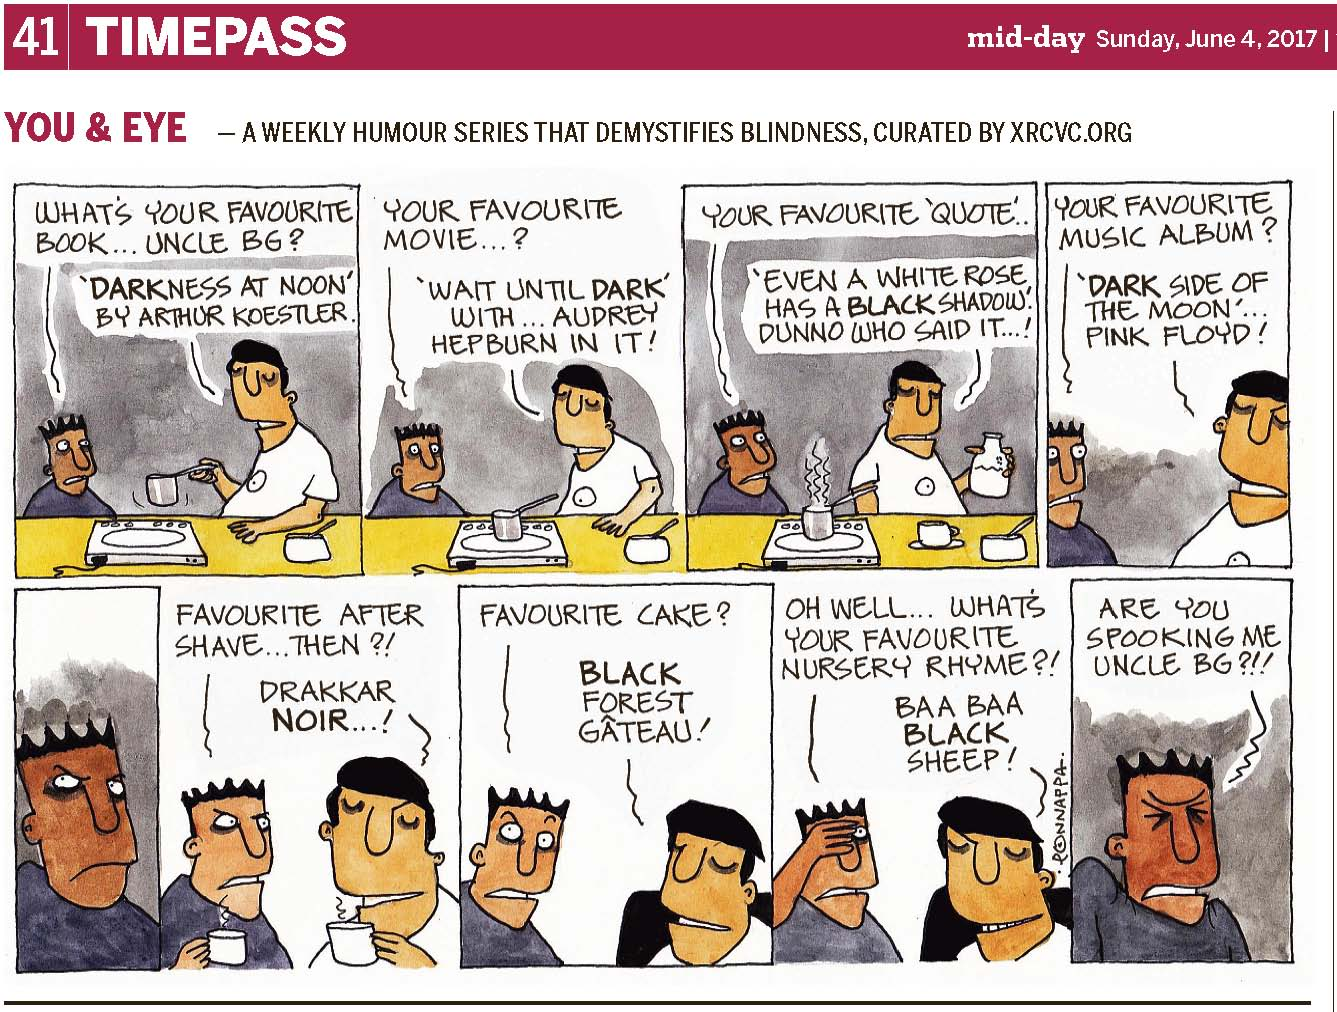 (top-left) 41 | TIMEPASS (top-right) mid-day Sunday, June 4, 2017 YOU & EYE – A WEEKLY HUMOUR SERIES THAT DEMYSTIFIES BLINDNESS, CURATED BY XRCVC.ORG Image description: A cartoon strip with 9 frames… Frame 1: (The background is coloured grey to appear dark. Pintu stands and looks at BG who is seen holding the long handle of a small pan above an electric induction cooktop which has a wire attached to it. His left hand rests on the kitchen platform; and close by is a spoon in a white bowl. Short curved lines near the pan represent movement.) Pintu: What's your favourite book… Uncle BG? BG: 'Darkness At Noon' by Arthur Koestler. Frame 2: (The background is coloured grey. Pintu's eyes are open wide as he looks straight ahead blankly. BG is seen standing casually with his left hand resting on the kitchen platform. The small pan is now placed on the electric induction cooktop. The spoon in the white bowl is seen close by, on the same kitchen platform.) Pintu: Your favourite movie…?